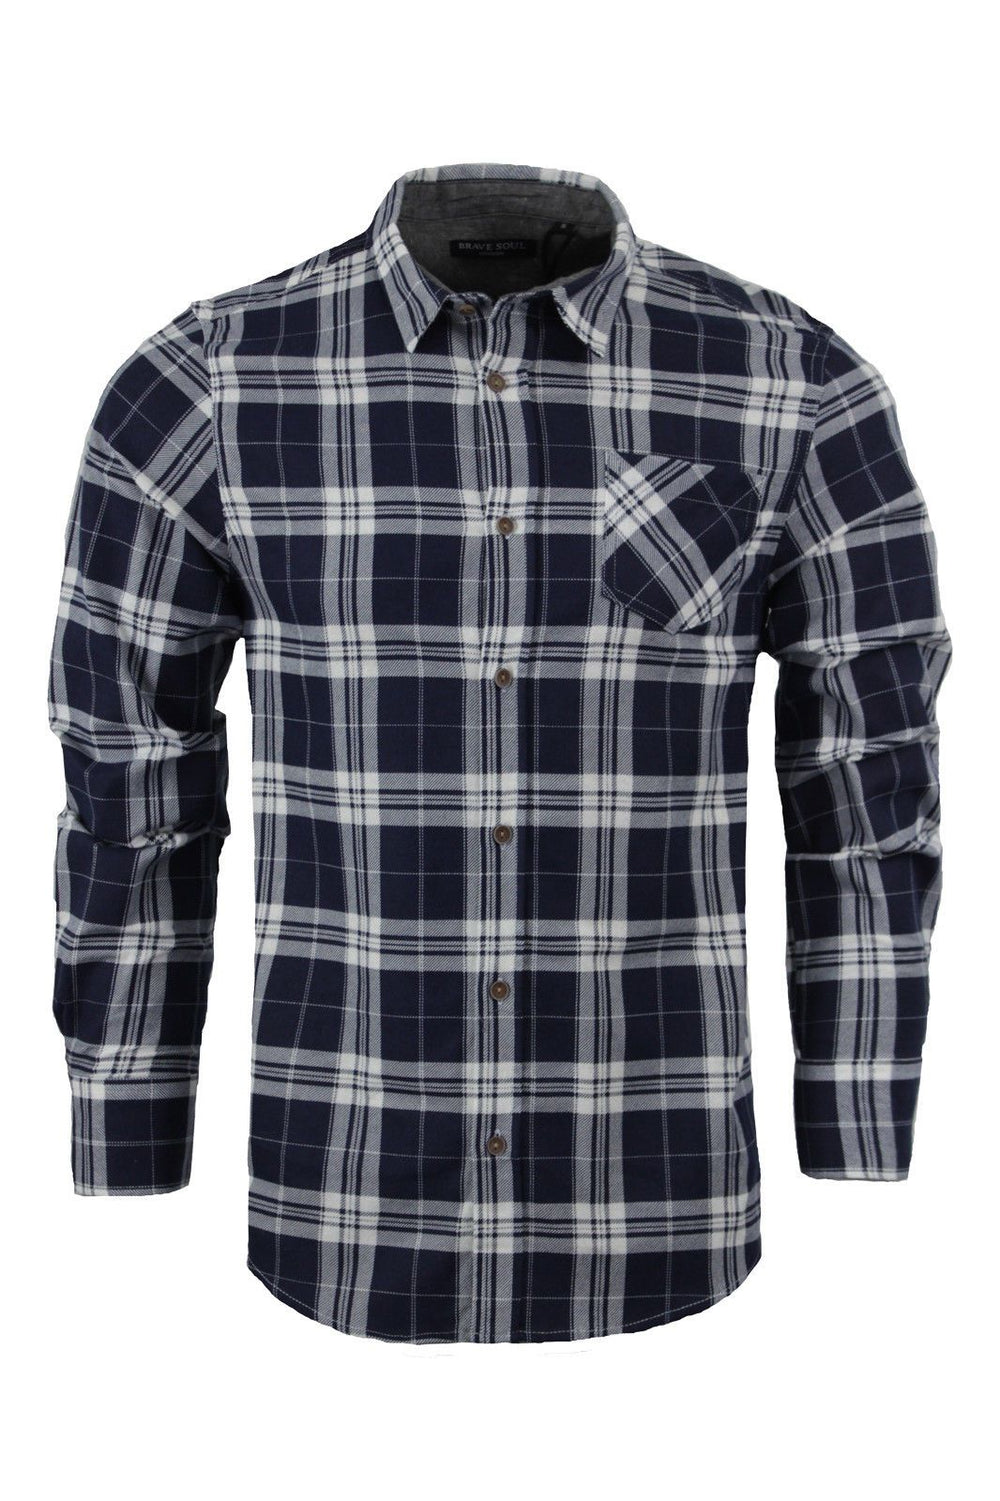 Shirts - Vince Check Shirt Navy